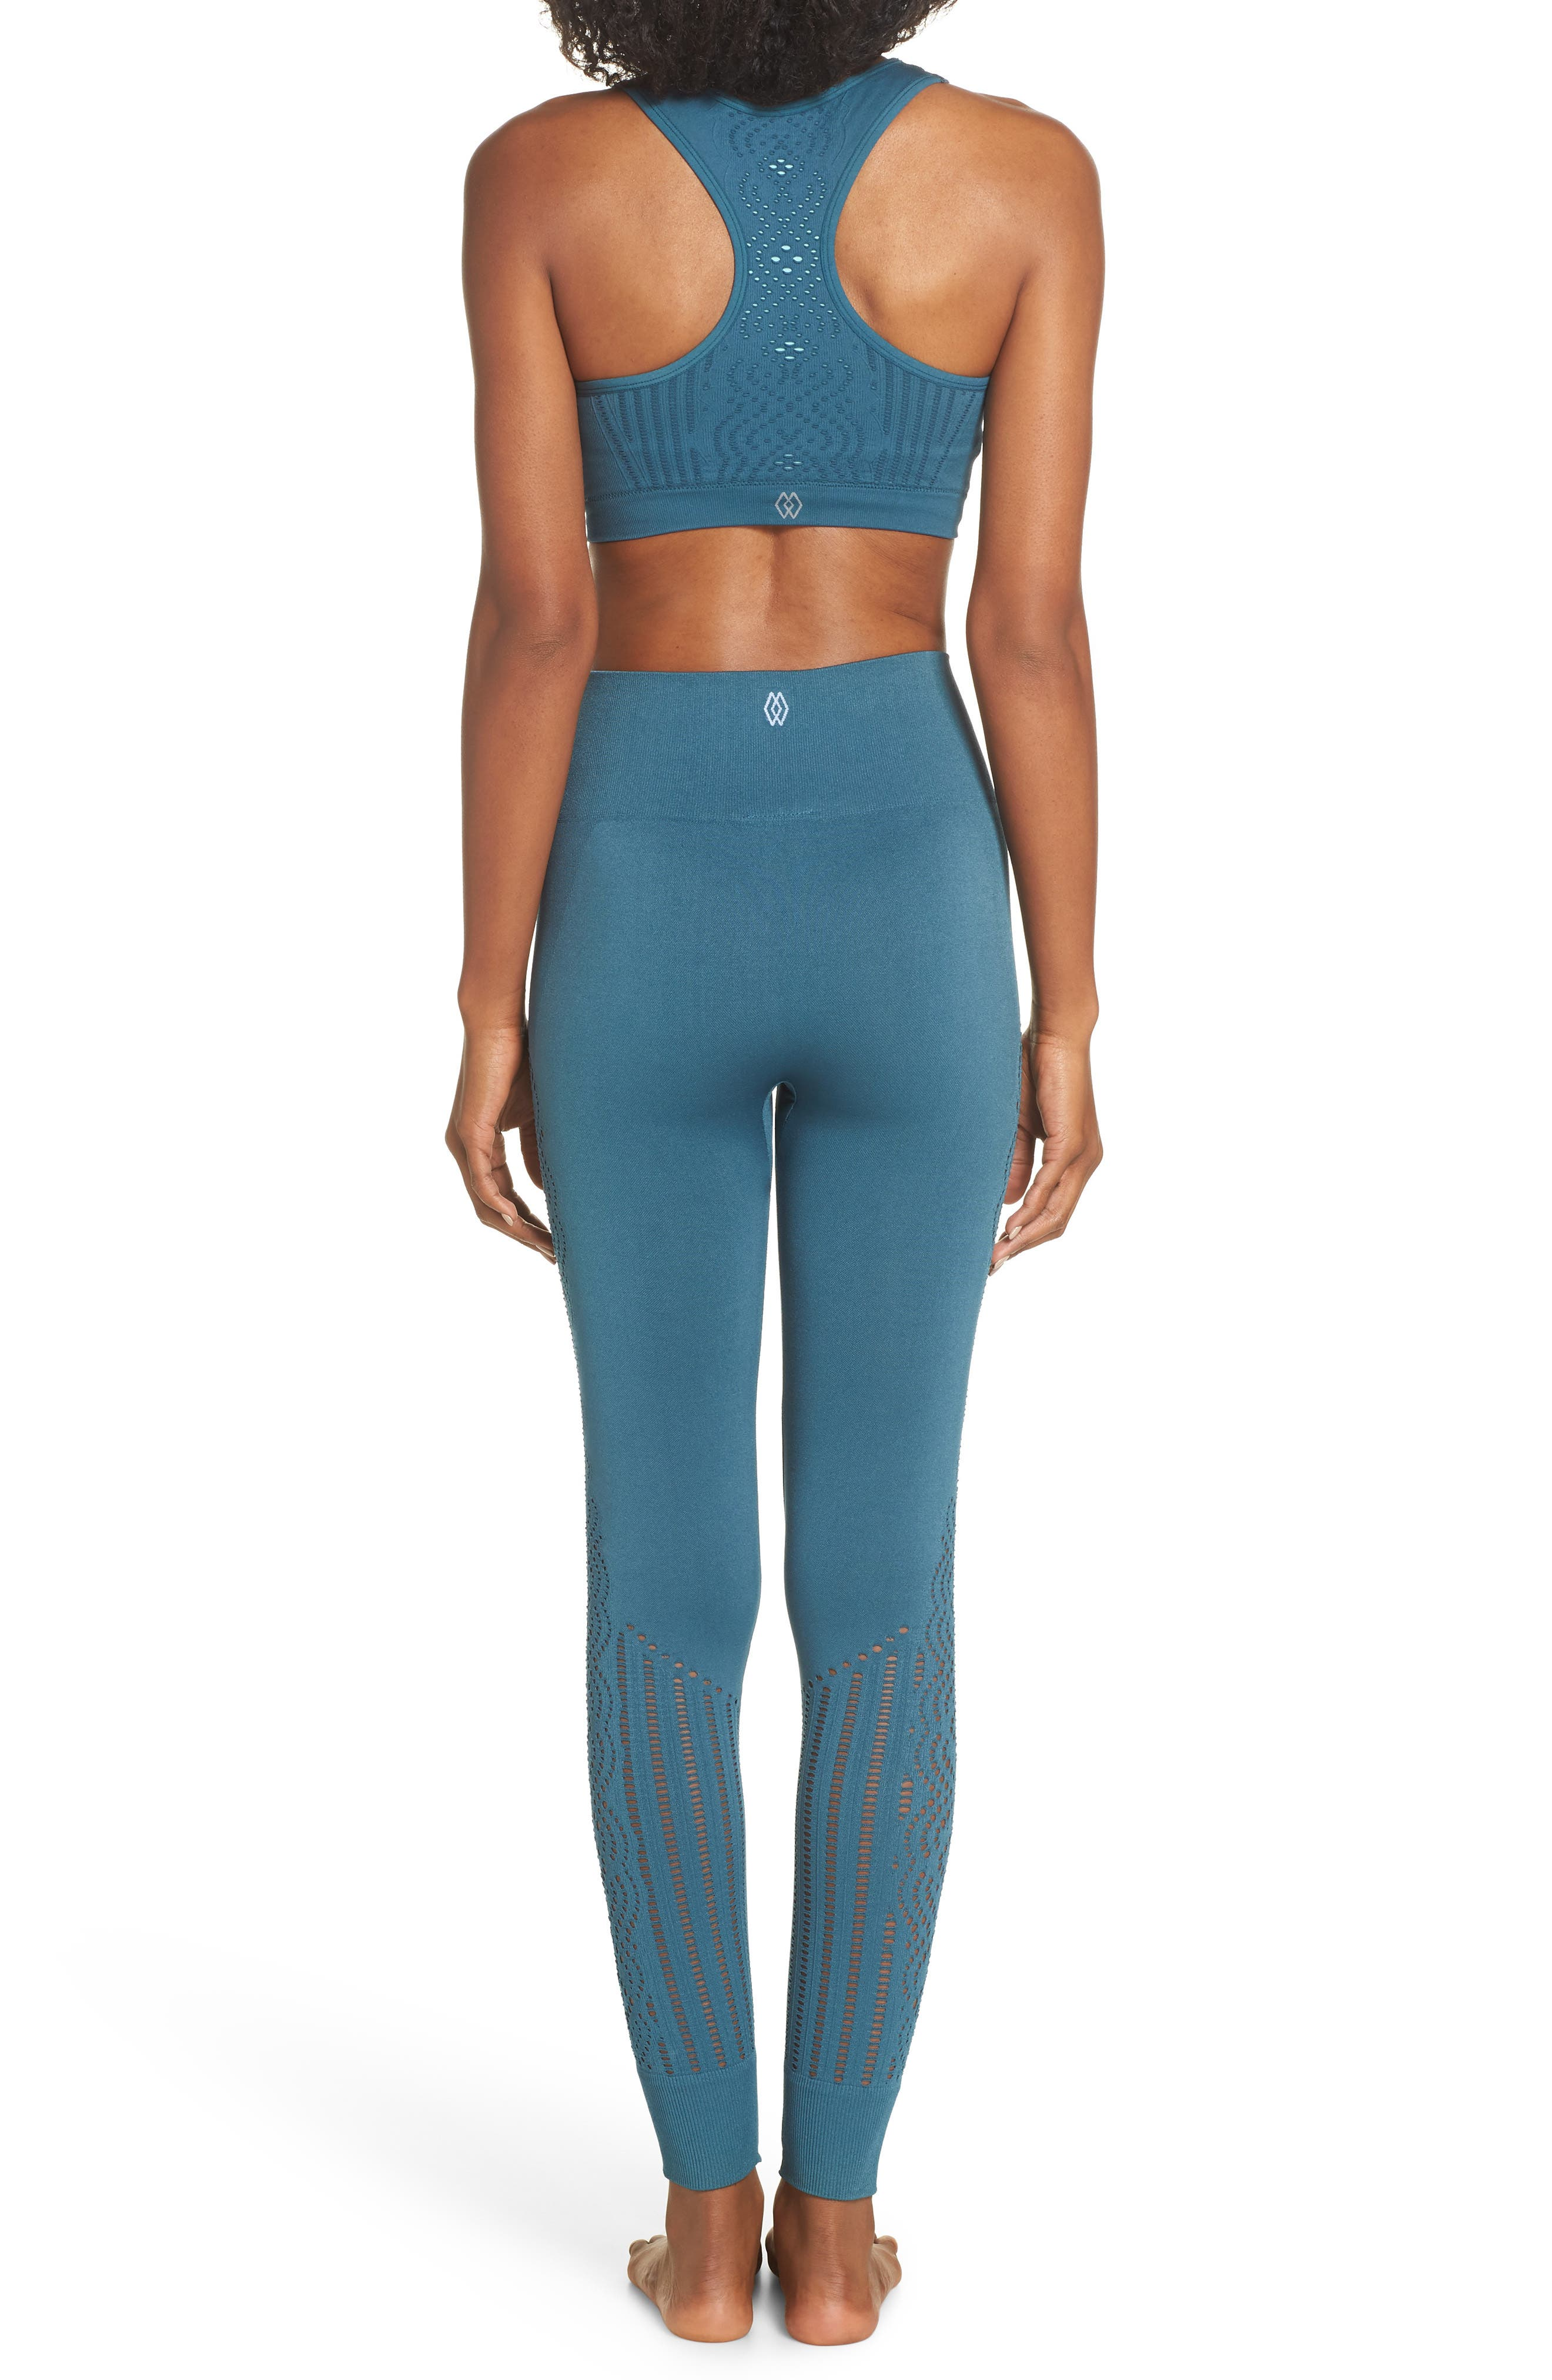 CLIMAWEAR,                             Hansa Sports Bra,                             Alternate thumbnail 8, color,                             NORTH SEA W/ AQUA HAZE